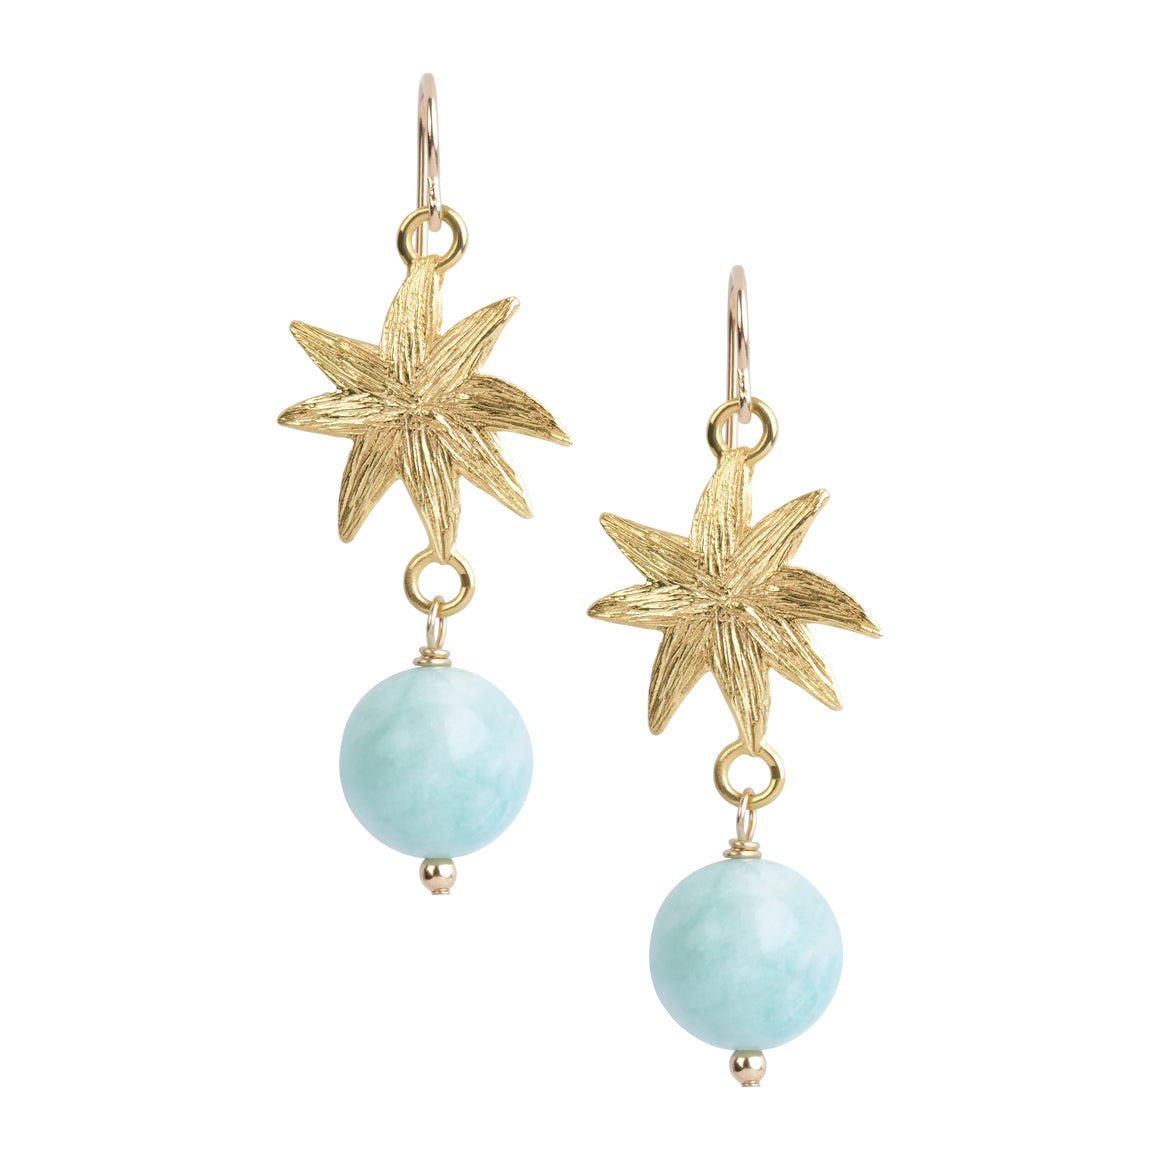 HopeStar Earrings in Amazonite - PRICE IS $32.50 WHEN USE CODE SUMMERFINAL50 FOR 50% OFF